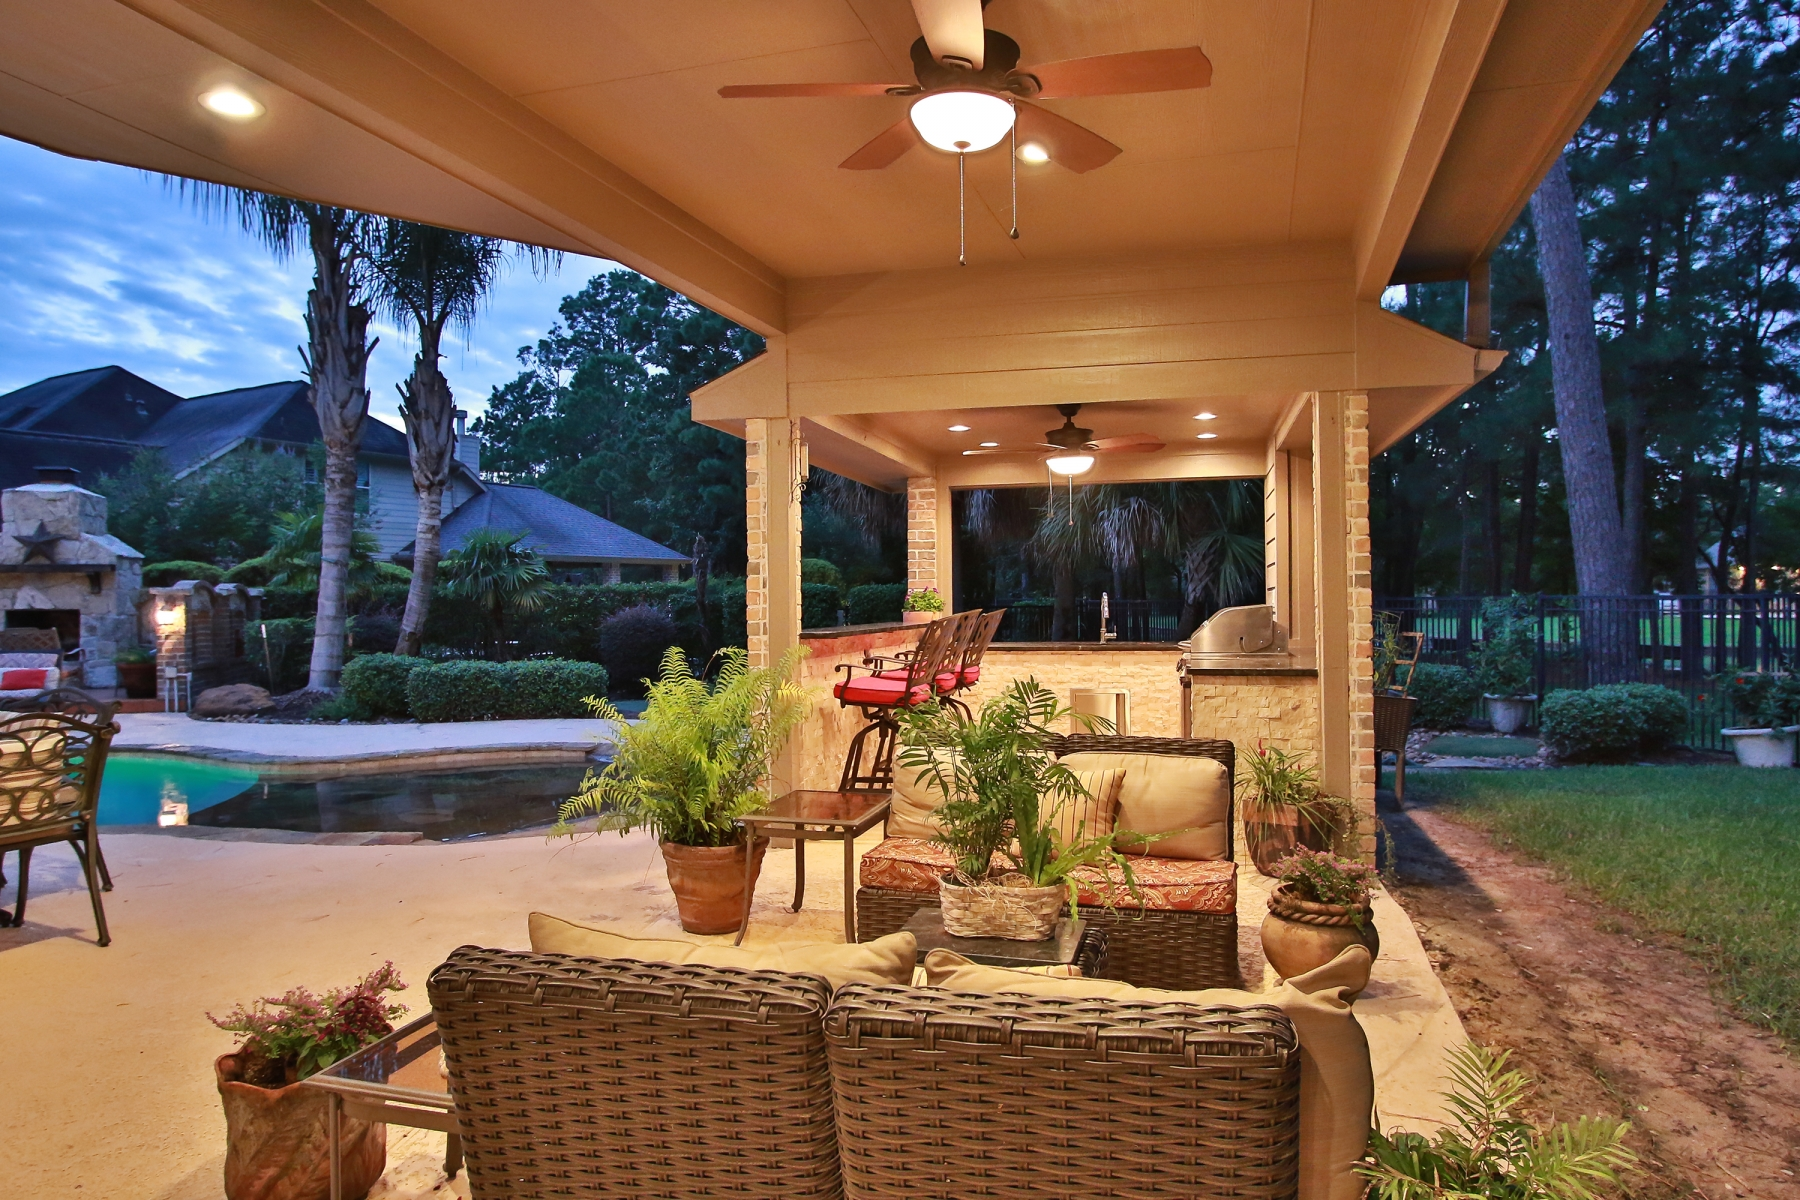 Covered Patio with Outdoor Living Areas and Outdoor Kitchen